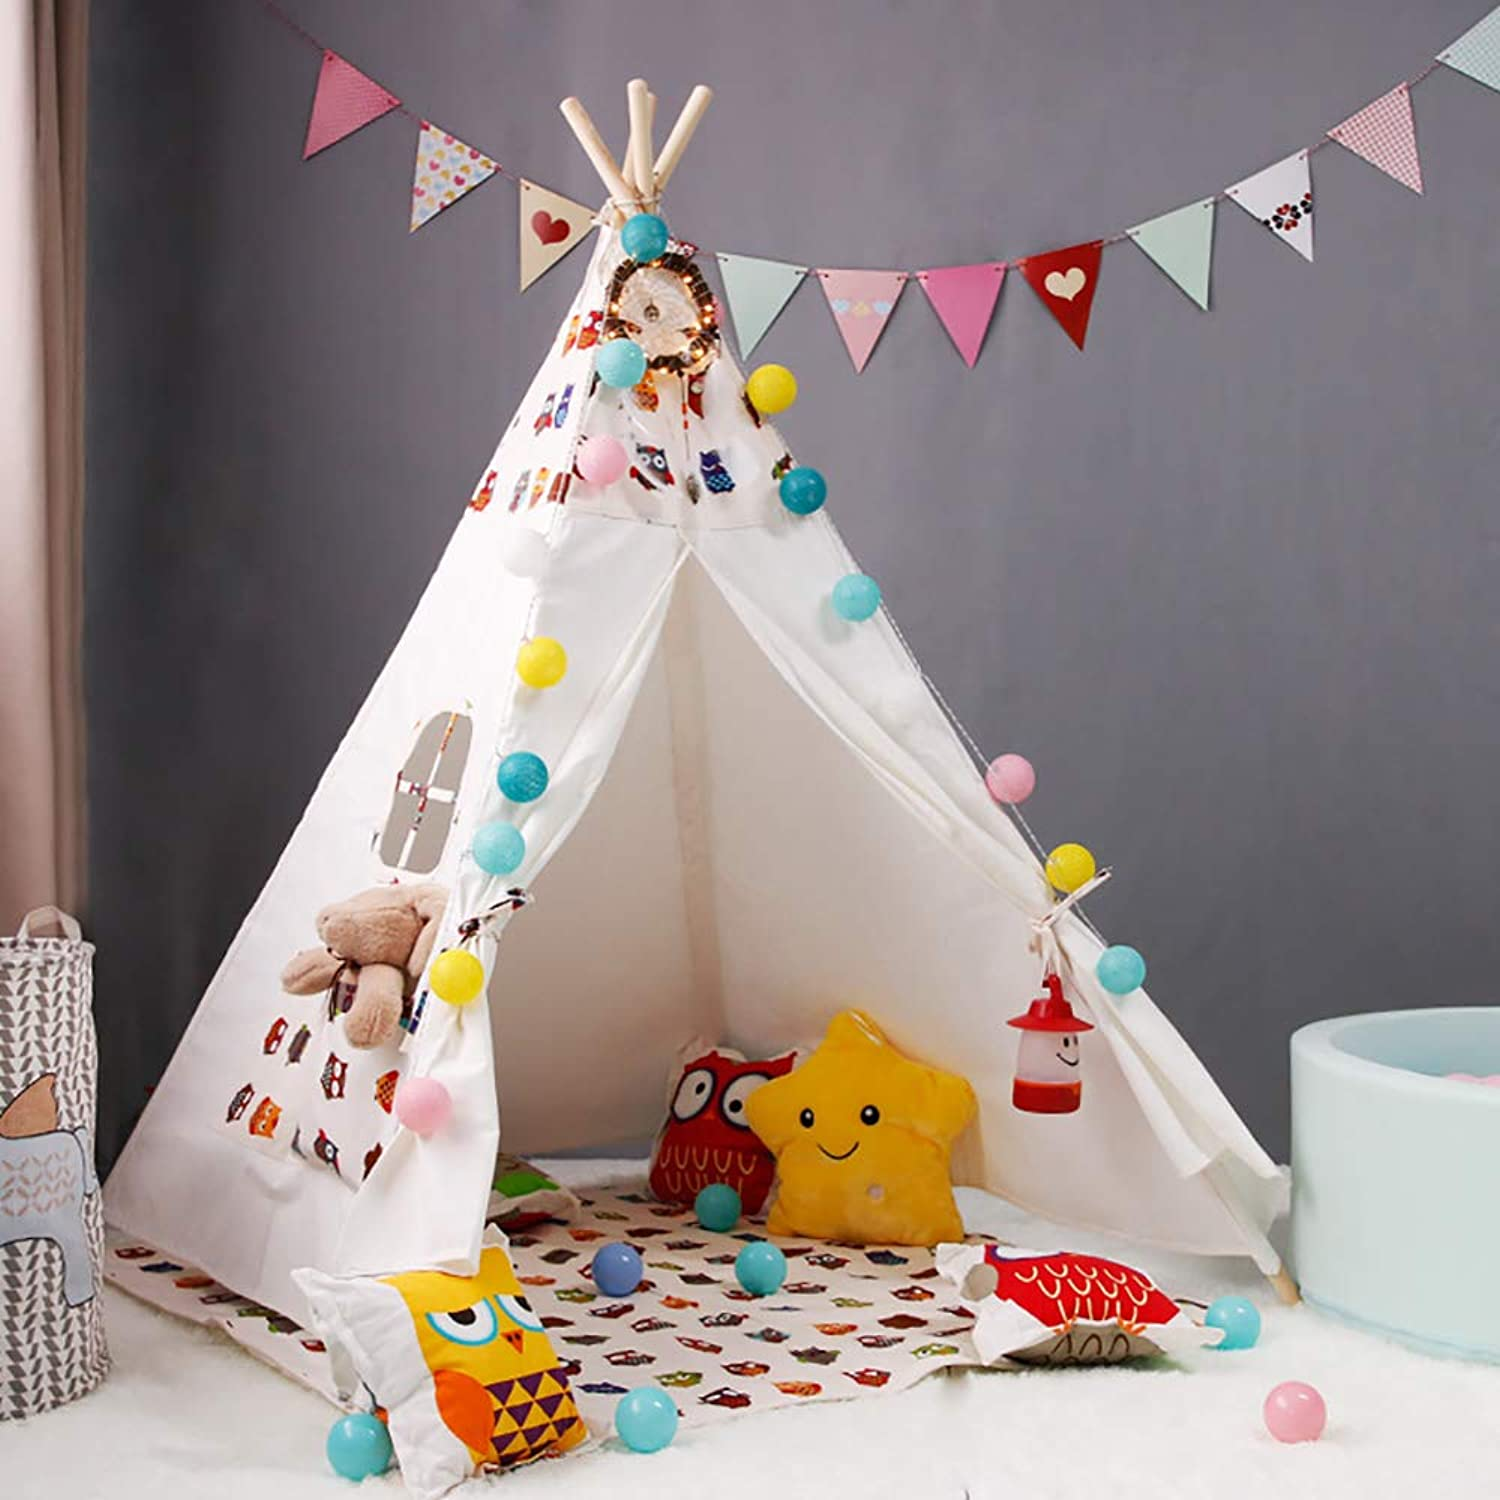 Kinder Indoor Teepee Zelt mit Thick Canvas Fabric, Coverot Pole Sleeves, und Canvas Easy to Install Zelt kommt mit Windows